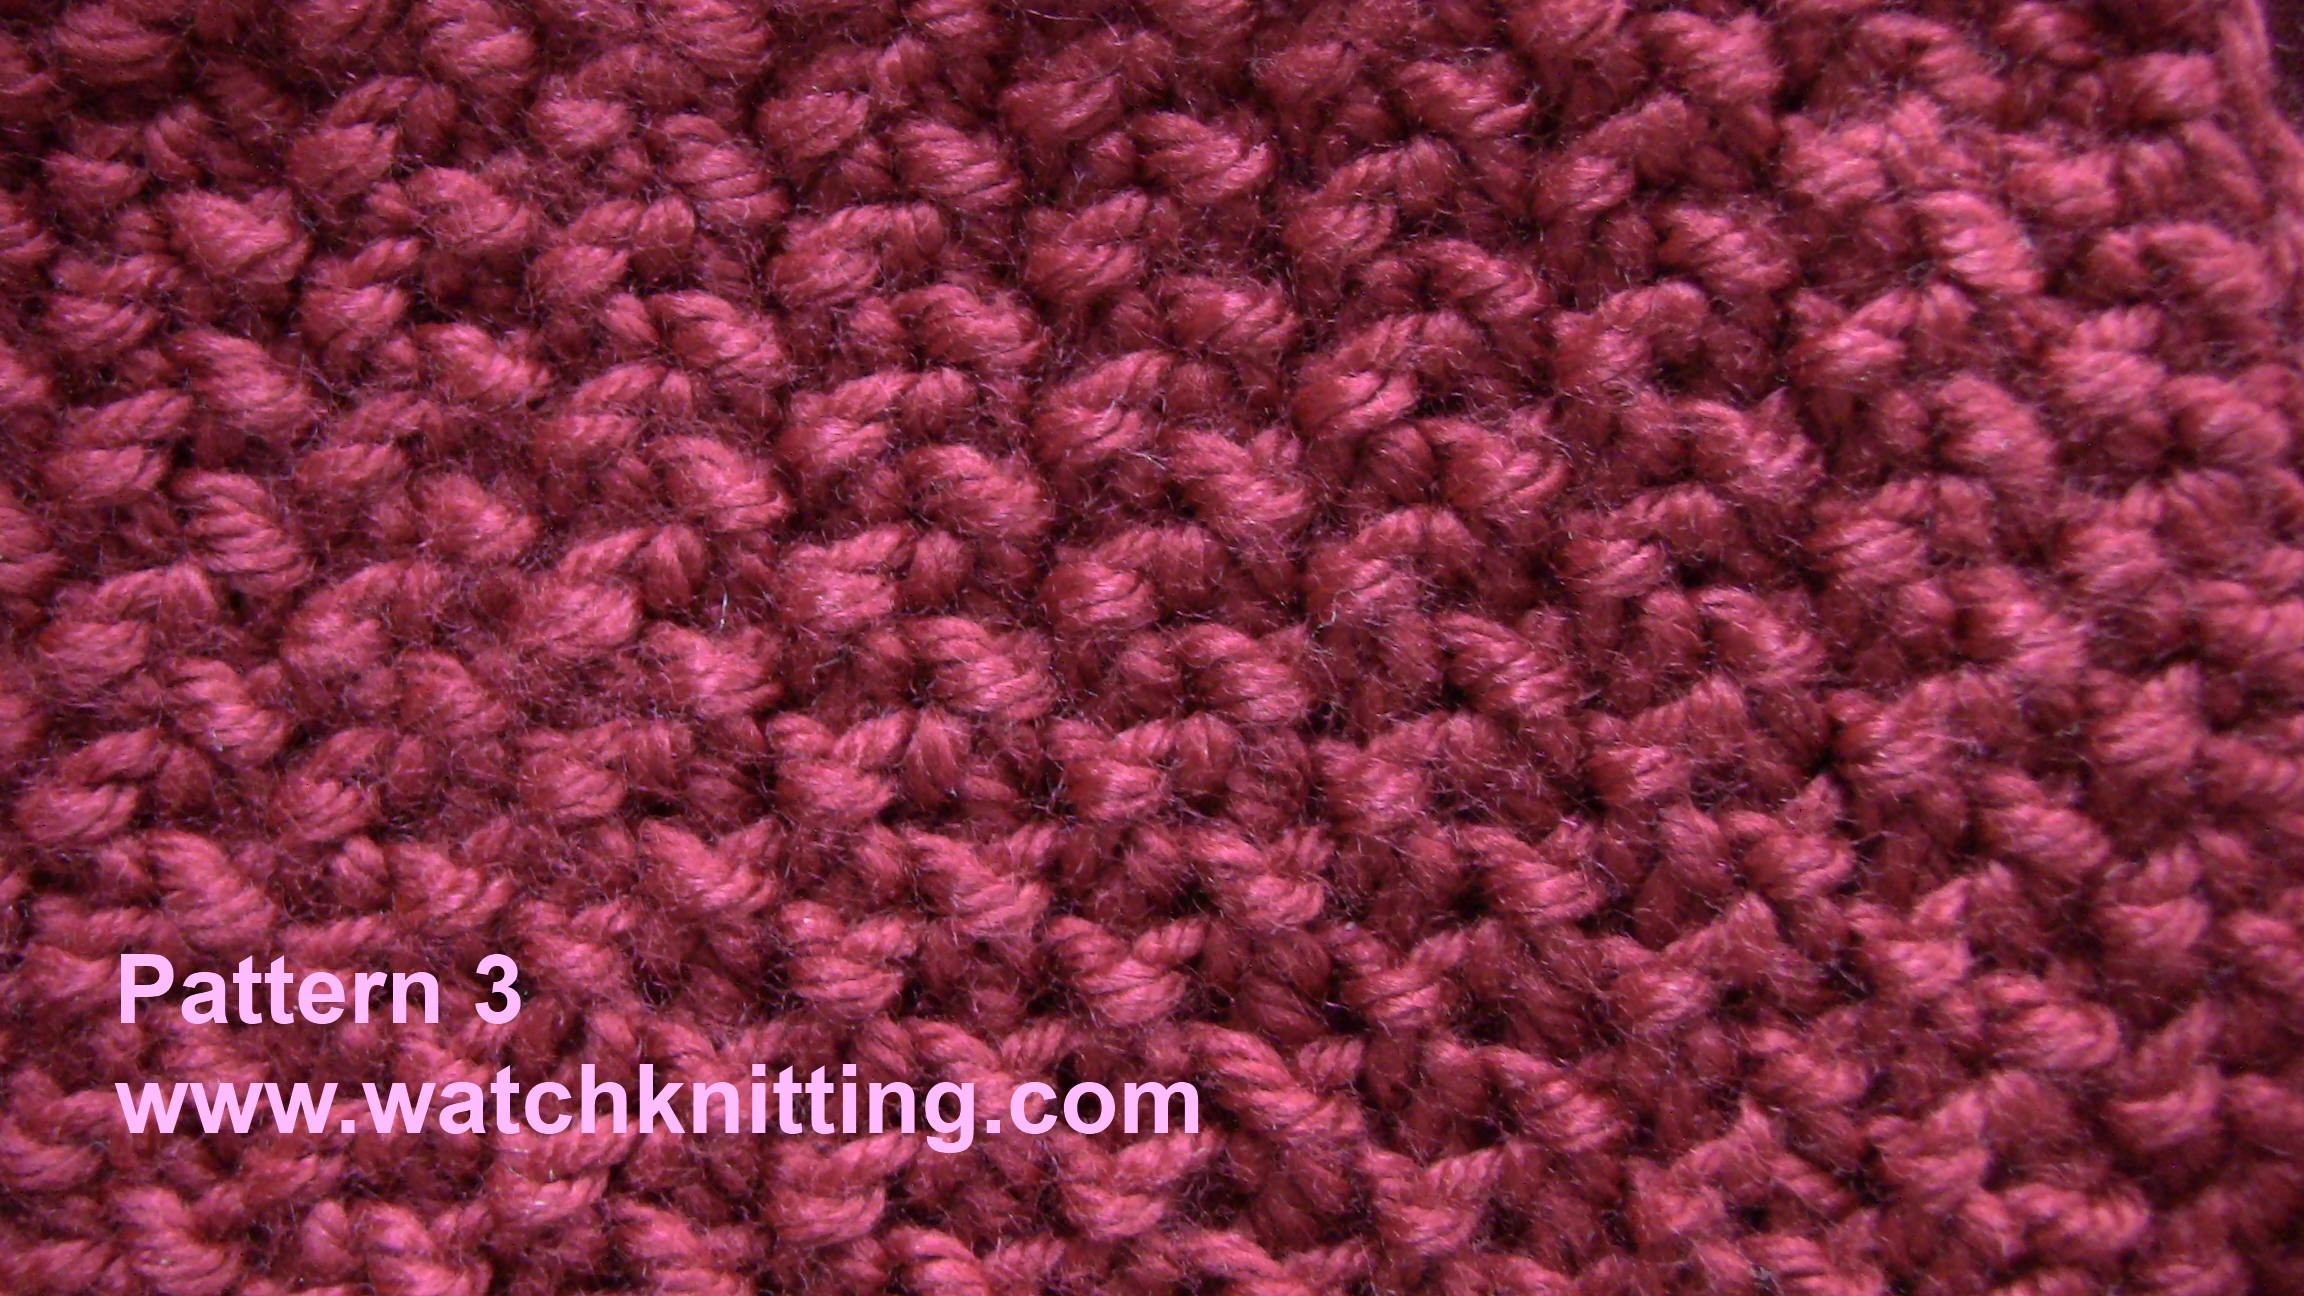 Awesome Plex Knitting Patterns V S Simple Knitting Patterns Simple Knitting Patterns Of Wonderful 42 Pictures Simple Knitting Patterns